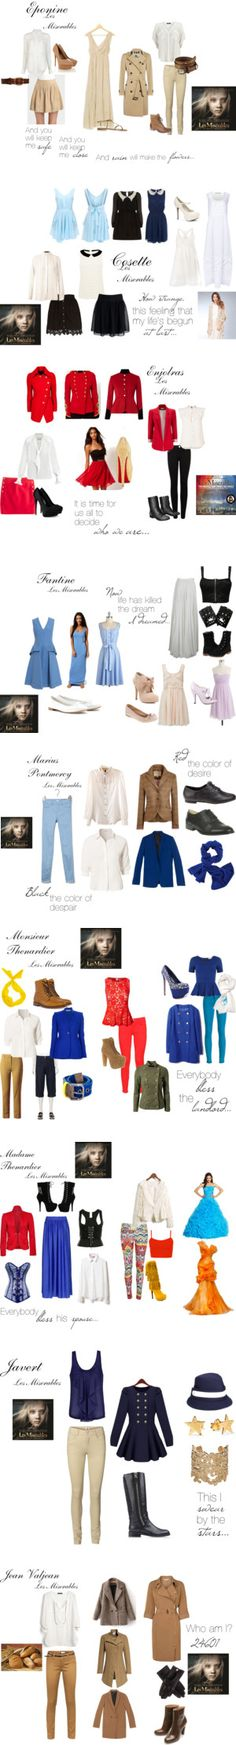 """Les Miserables Inspired Outfits"" by little-fall-of-rain on Polyvore. I want all of these."